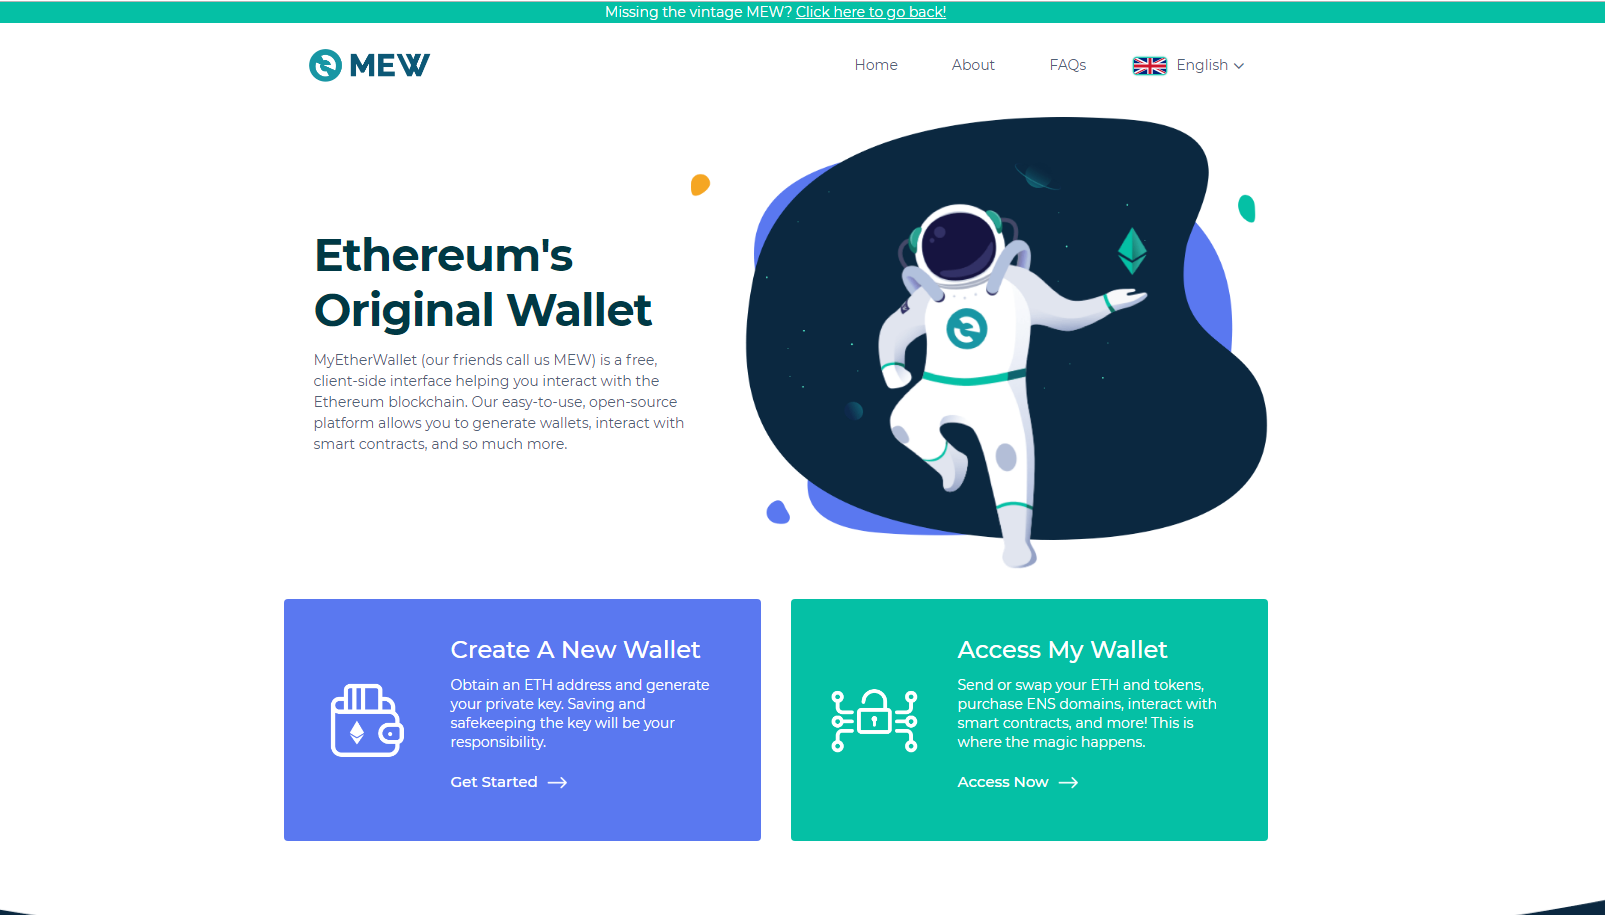 How to register and use MyEtherWallet (MEW)